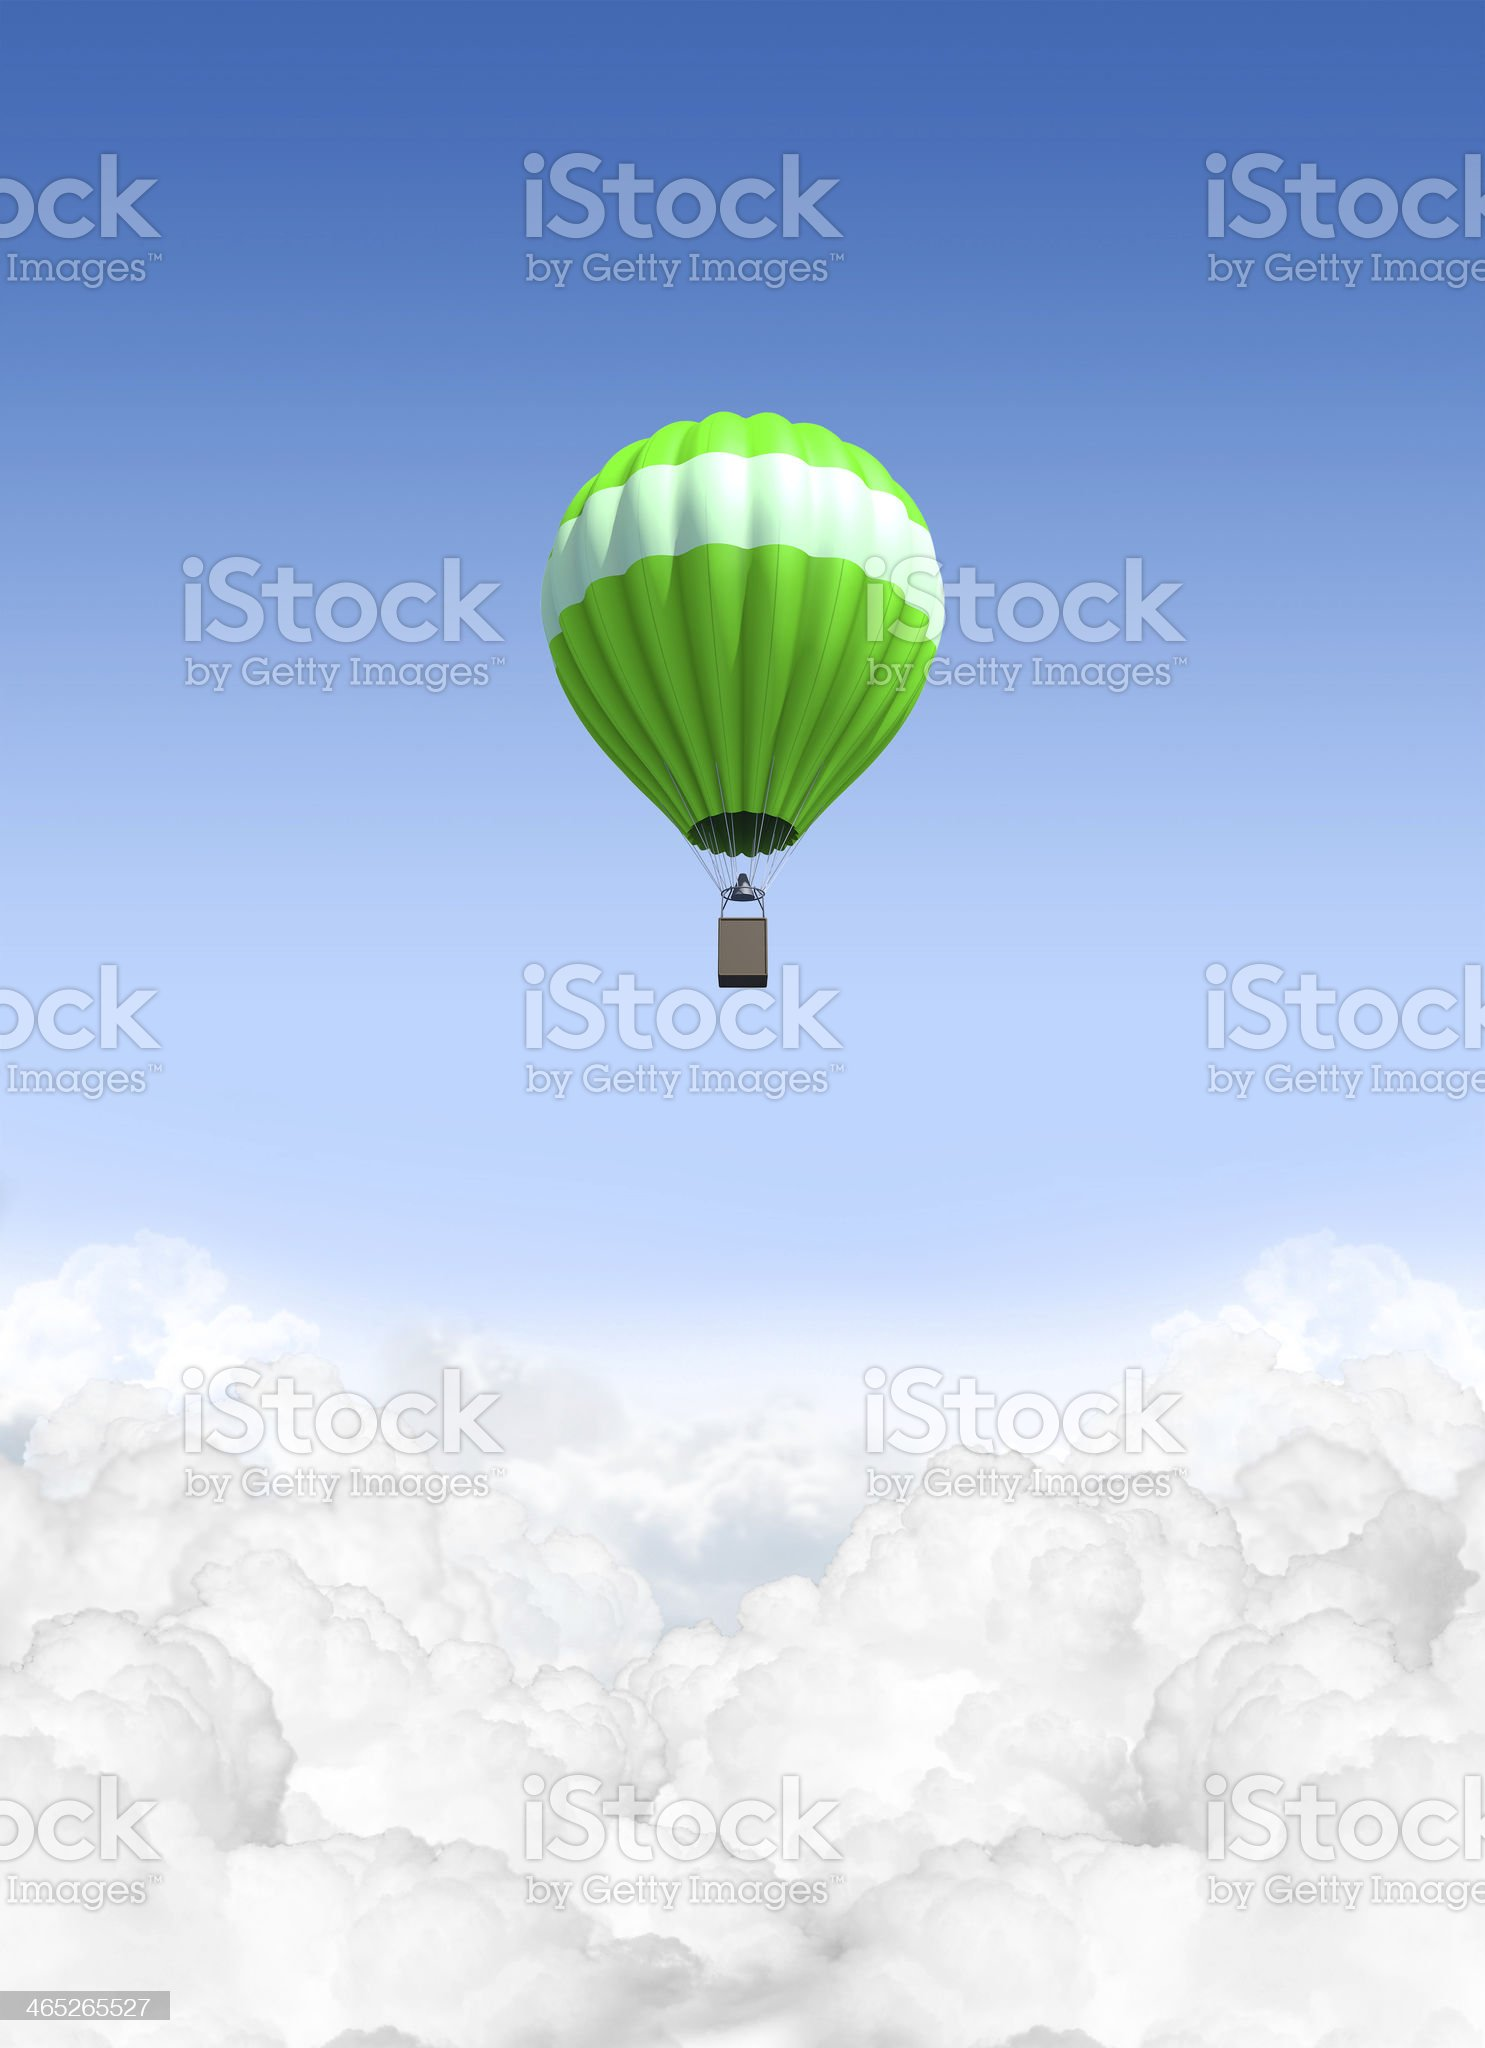 Hot Air Balloon Above The Clouds royalty-free stock photo